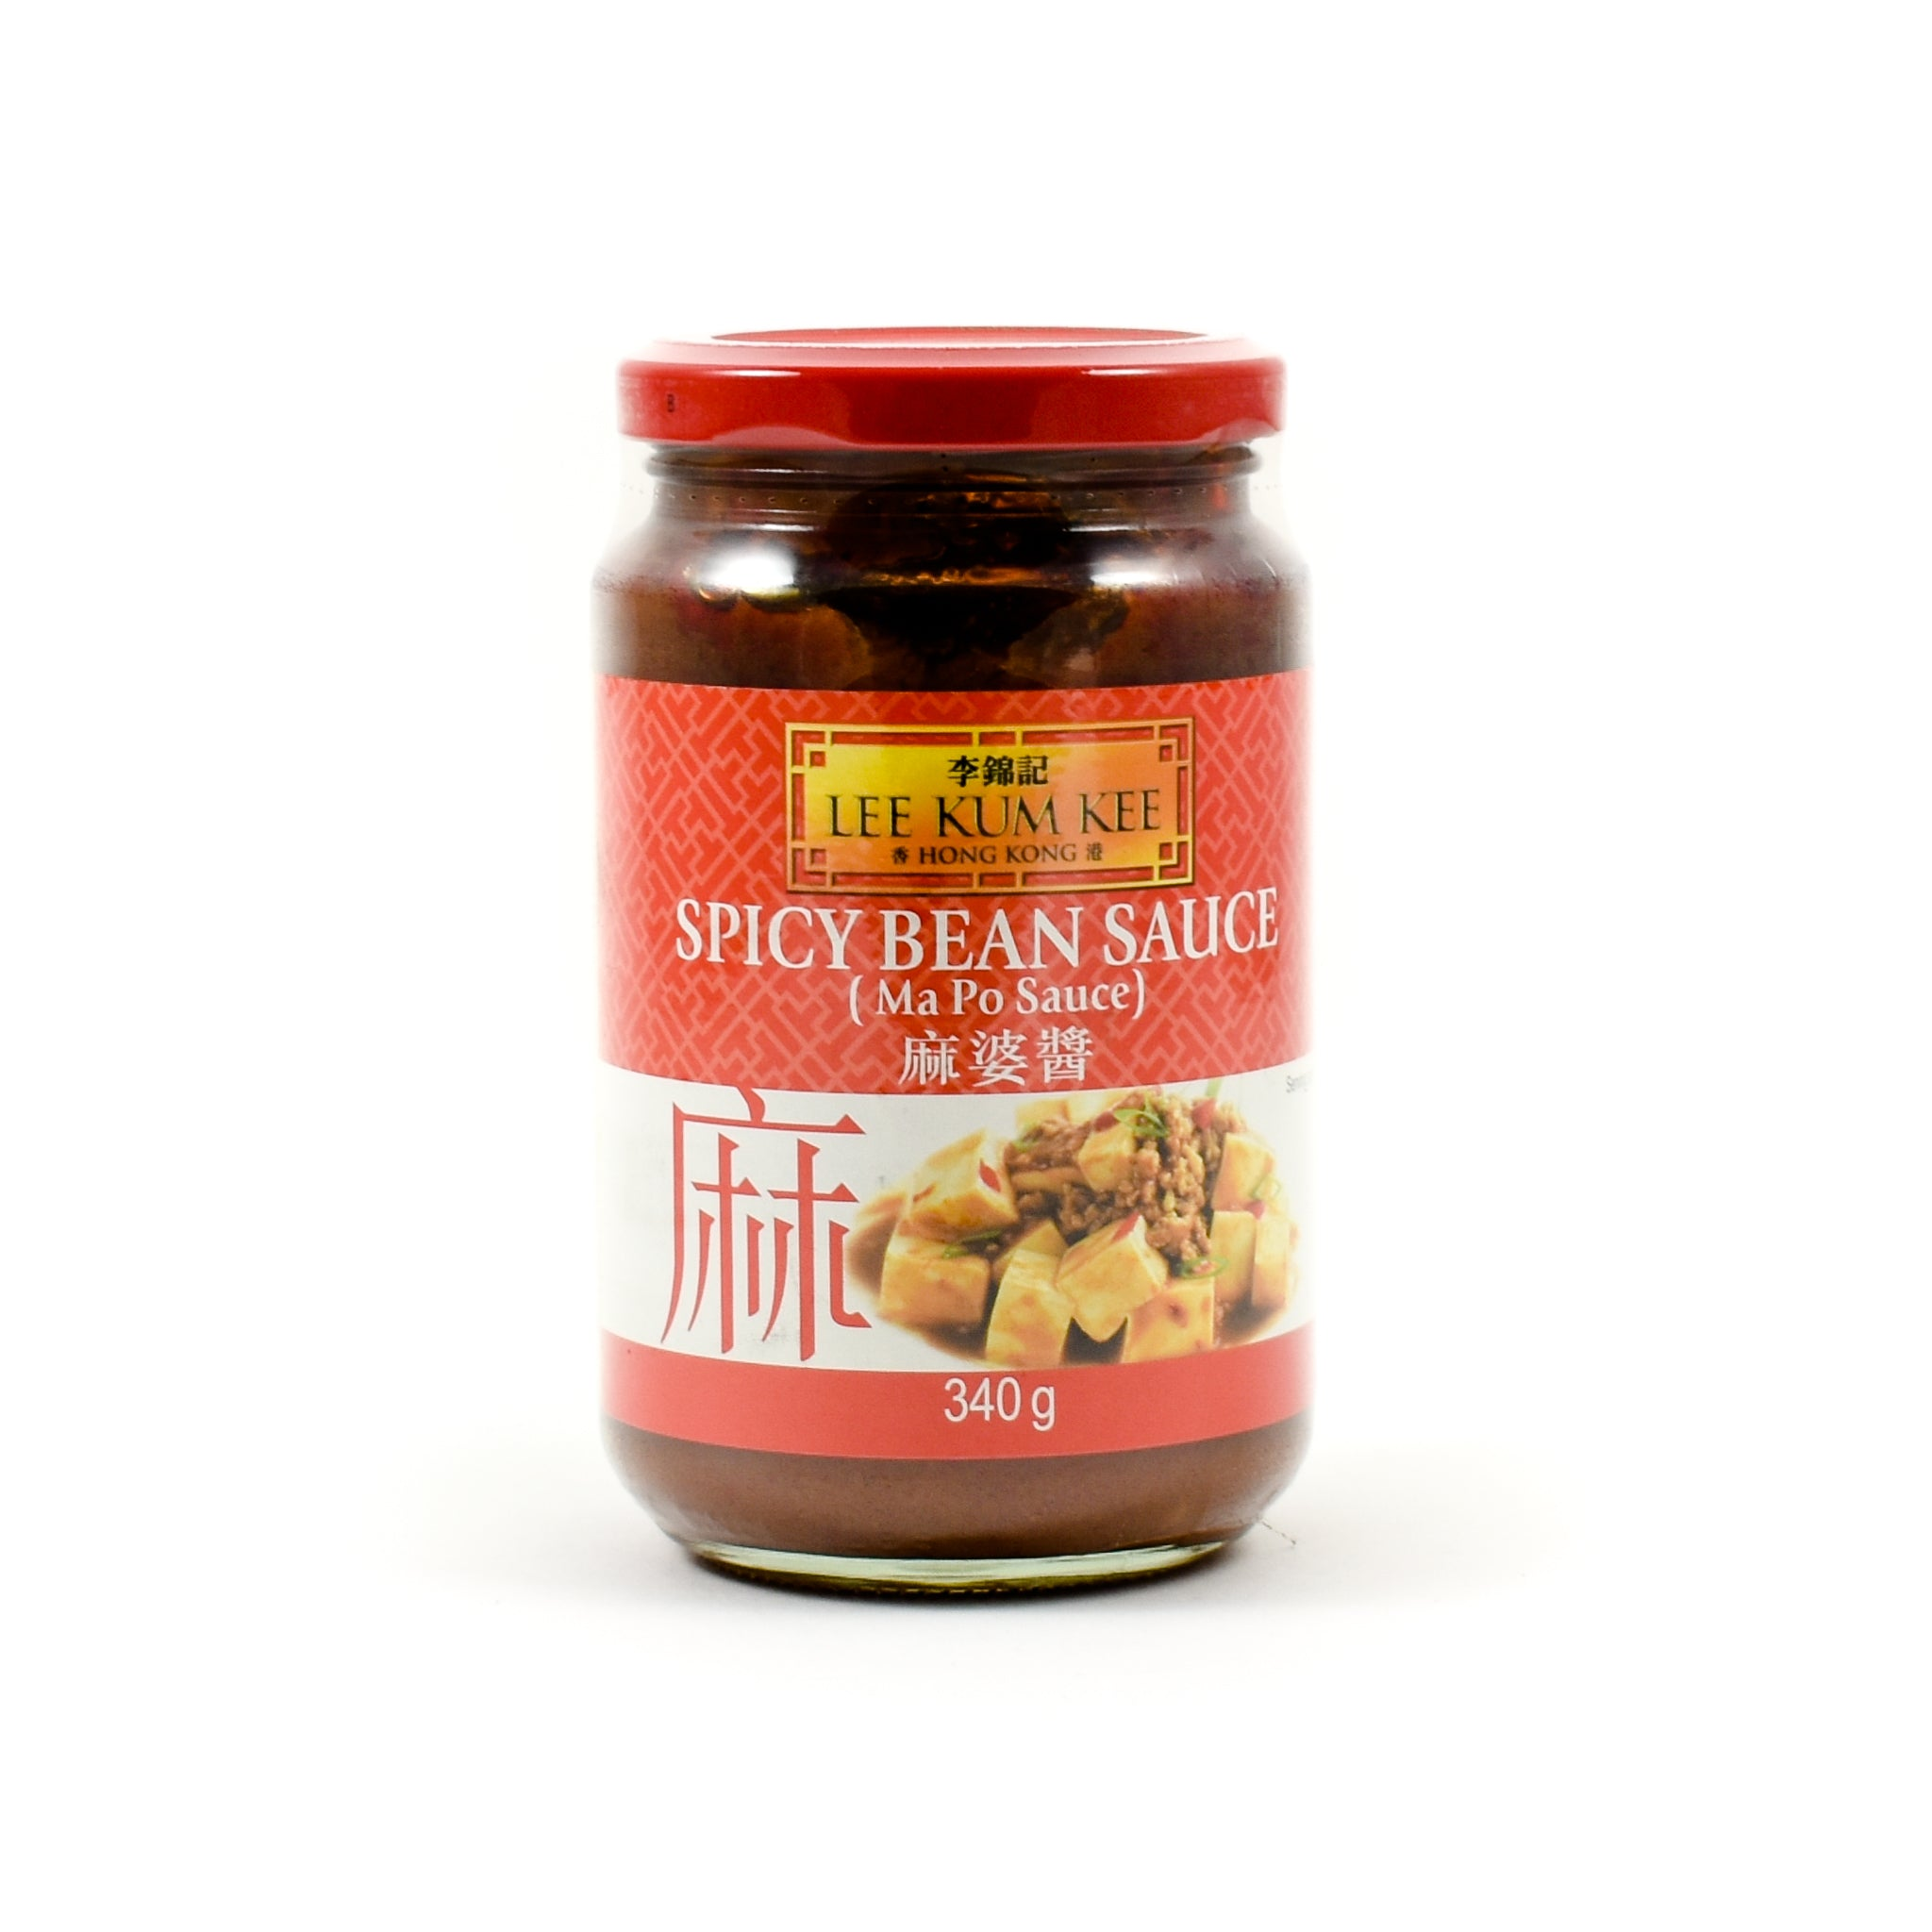 Lee Kum Kee Spicy Bean Sauce Ma Po 340g Ingredients Sauces & Condiments Asian Sauces & Condiments Chinese Food